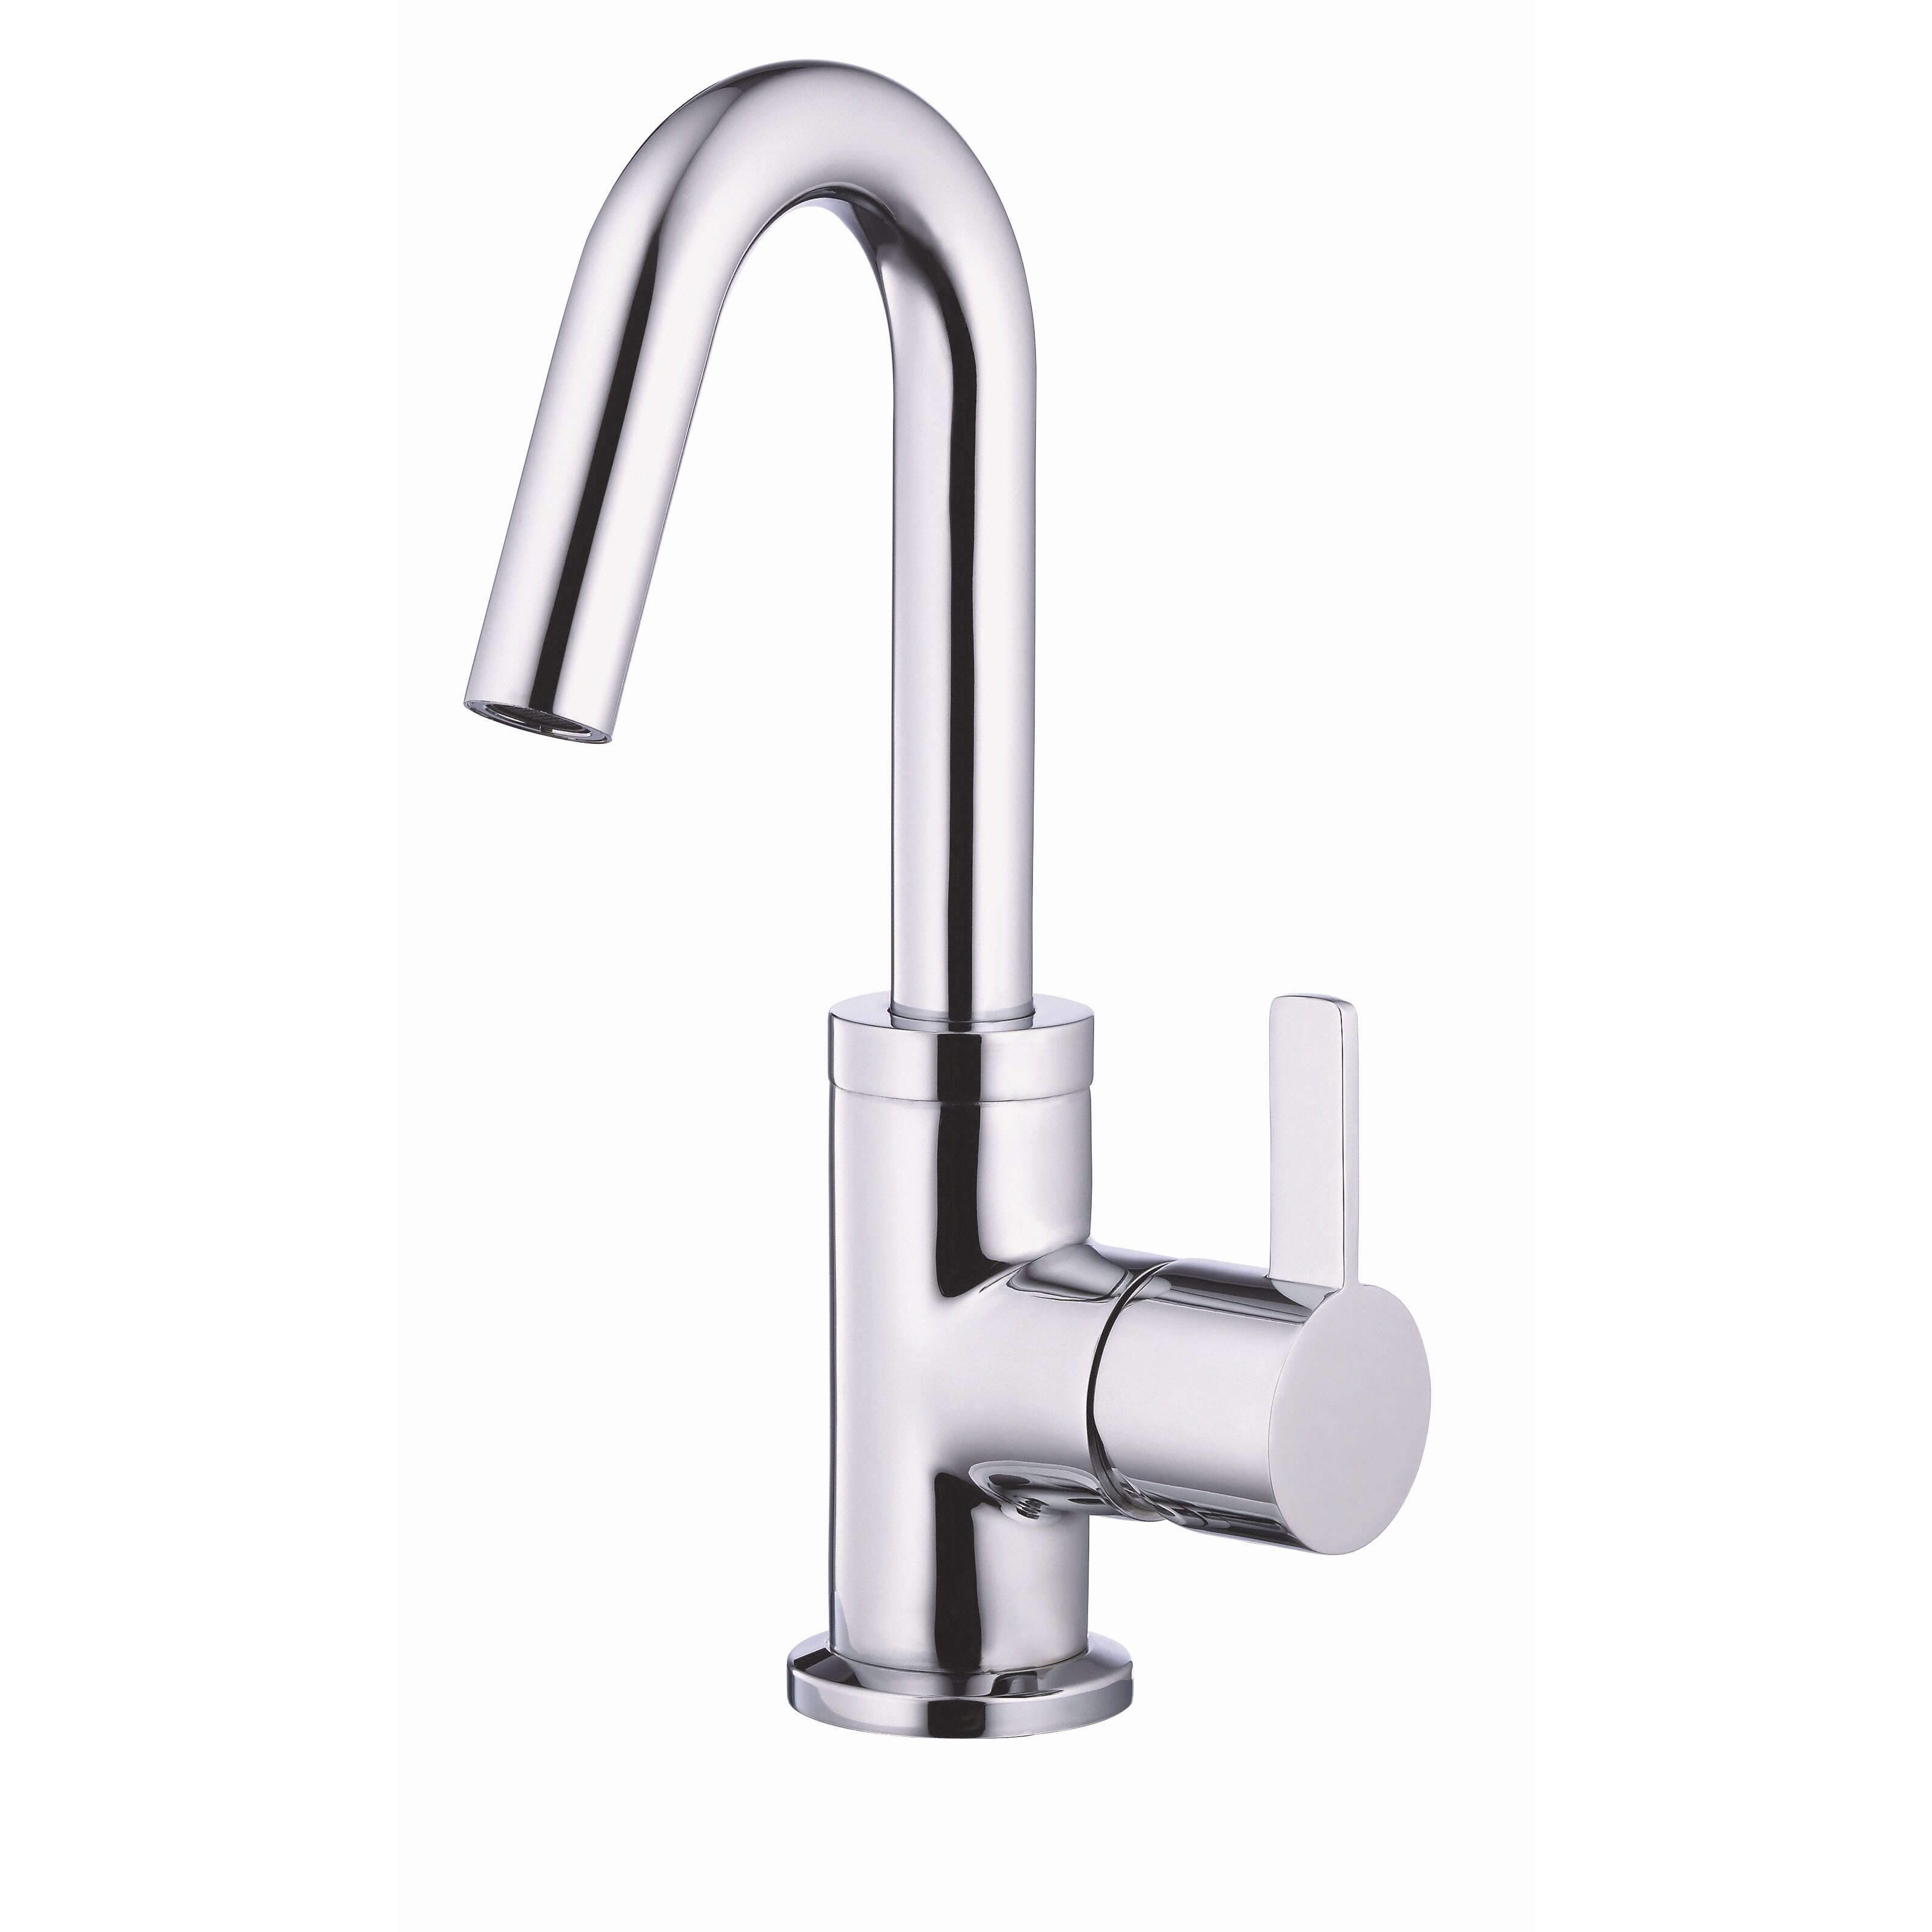 Danze Bathroom Accessories Danze Amalfi Single Handle Single Hole Bathroom Faucet Reviews